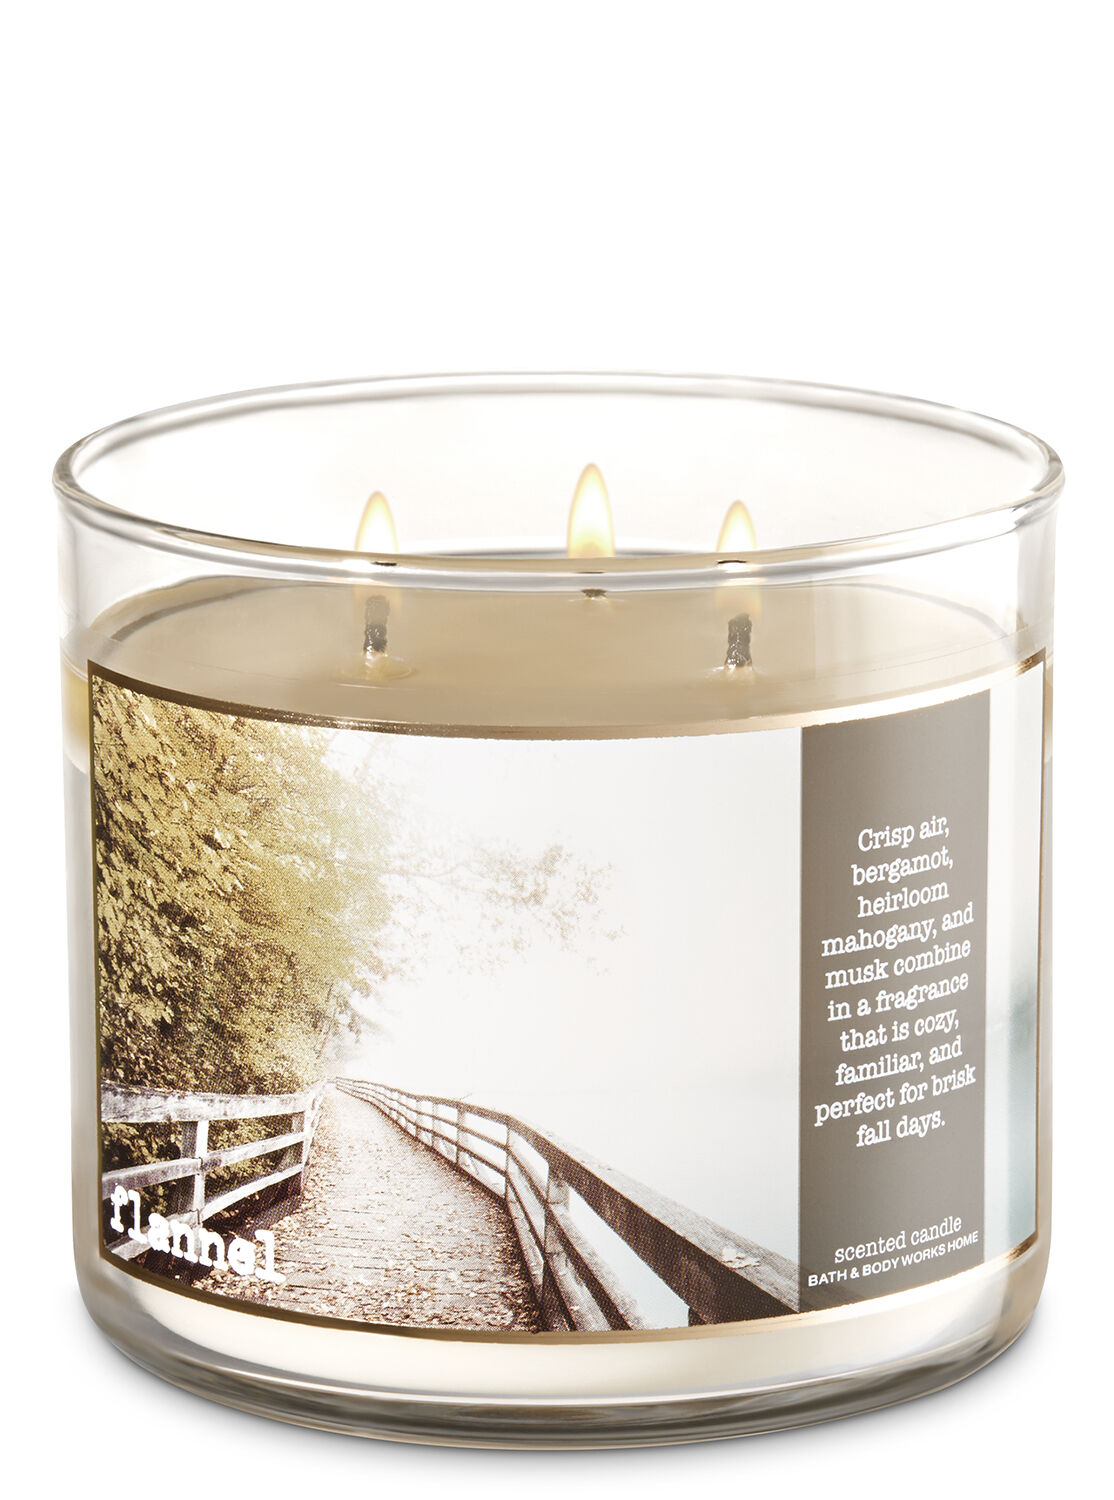 Flannel 3 Wick Candle   Bath And Body Works3 Wick Candles   Bath   Body Works. Bath And Body Shop Toronto. Home Design Ideas